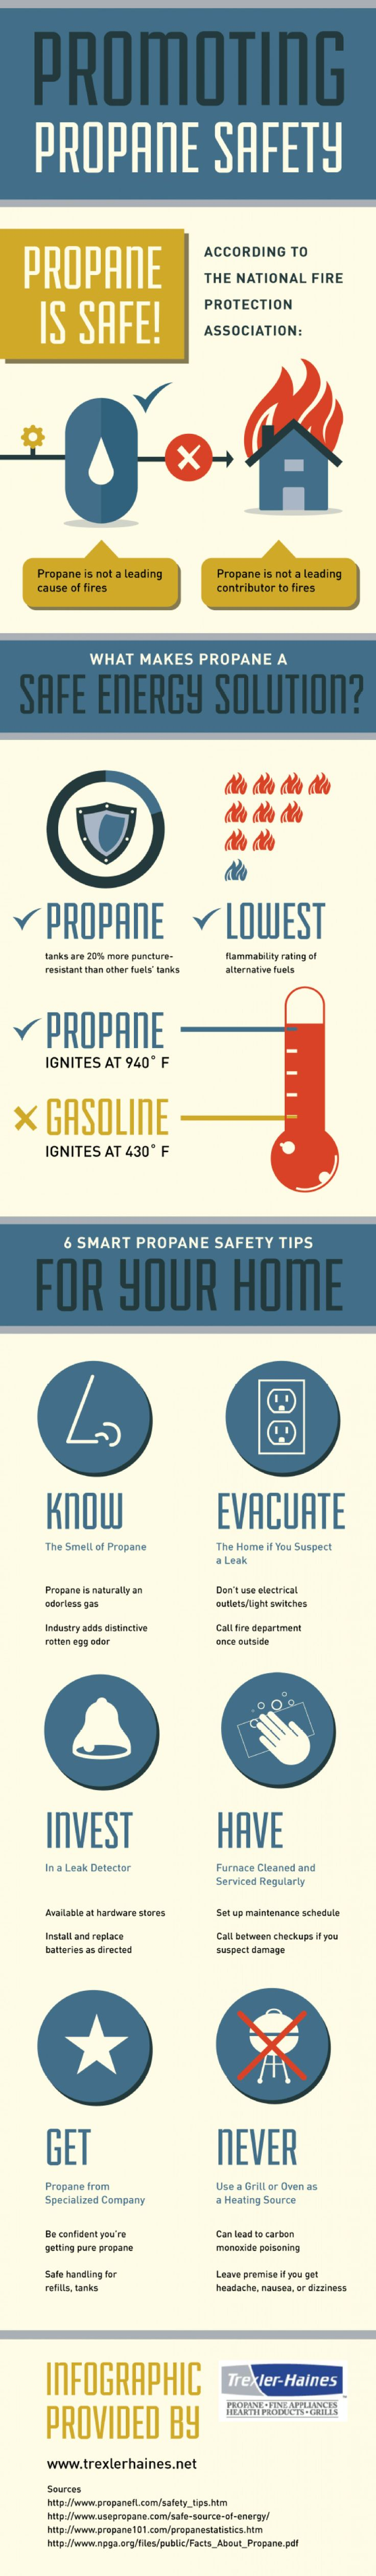 41 best images about propane safety tips on pinterest to for Home safety facts